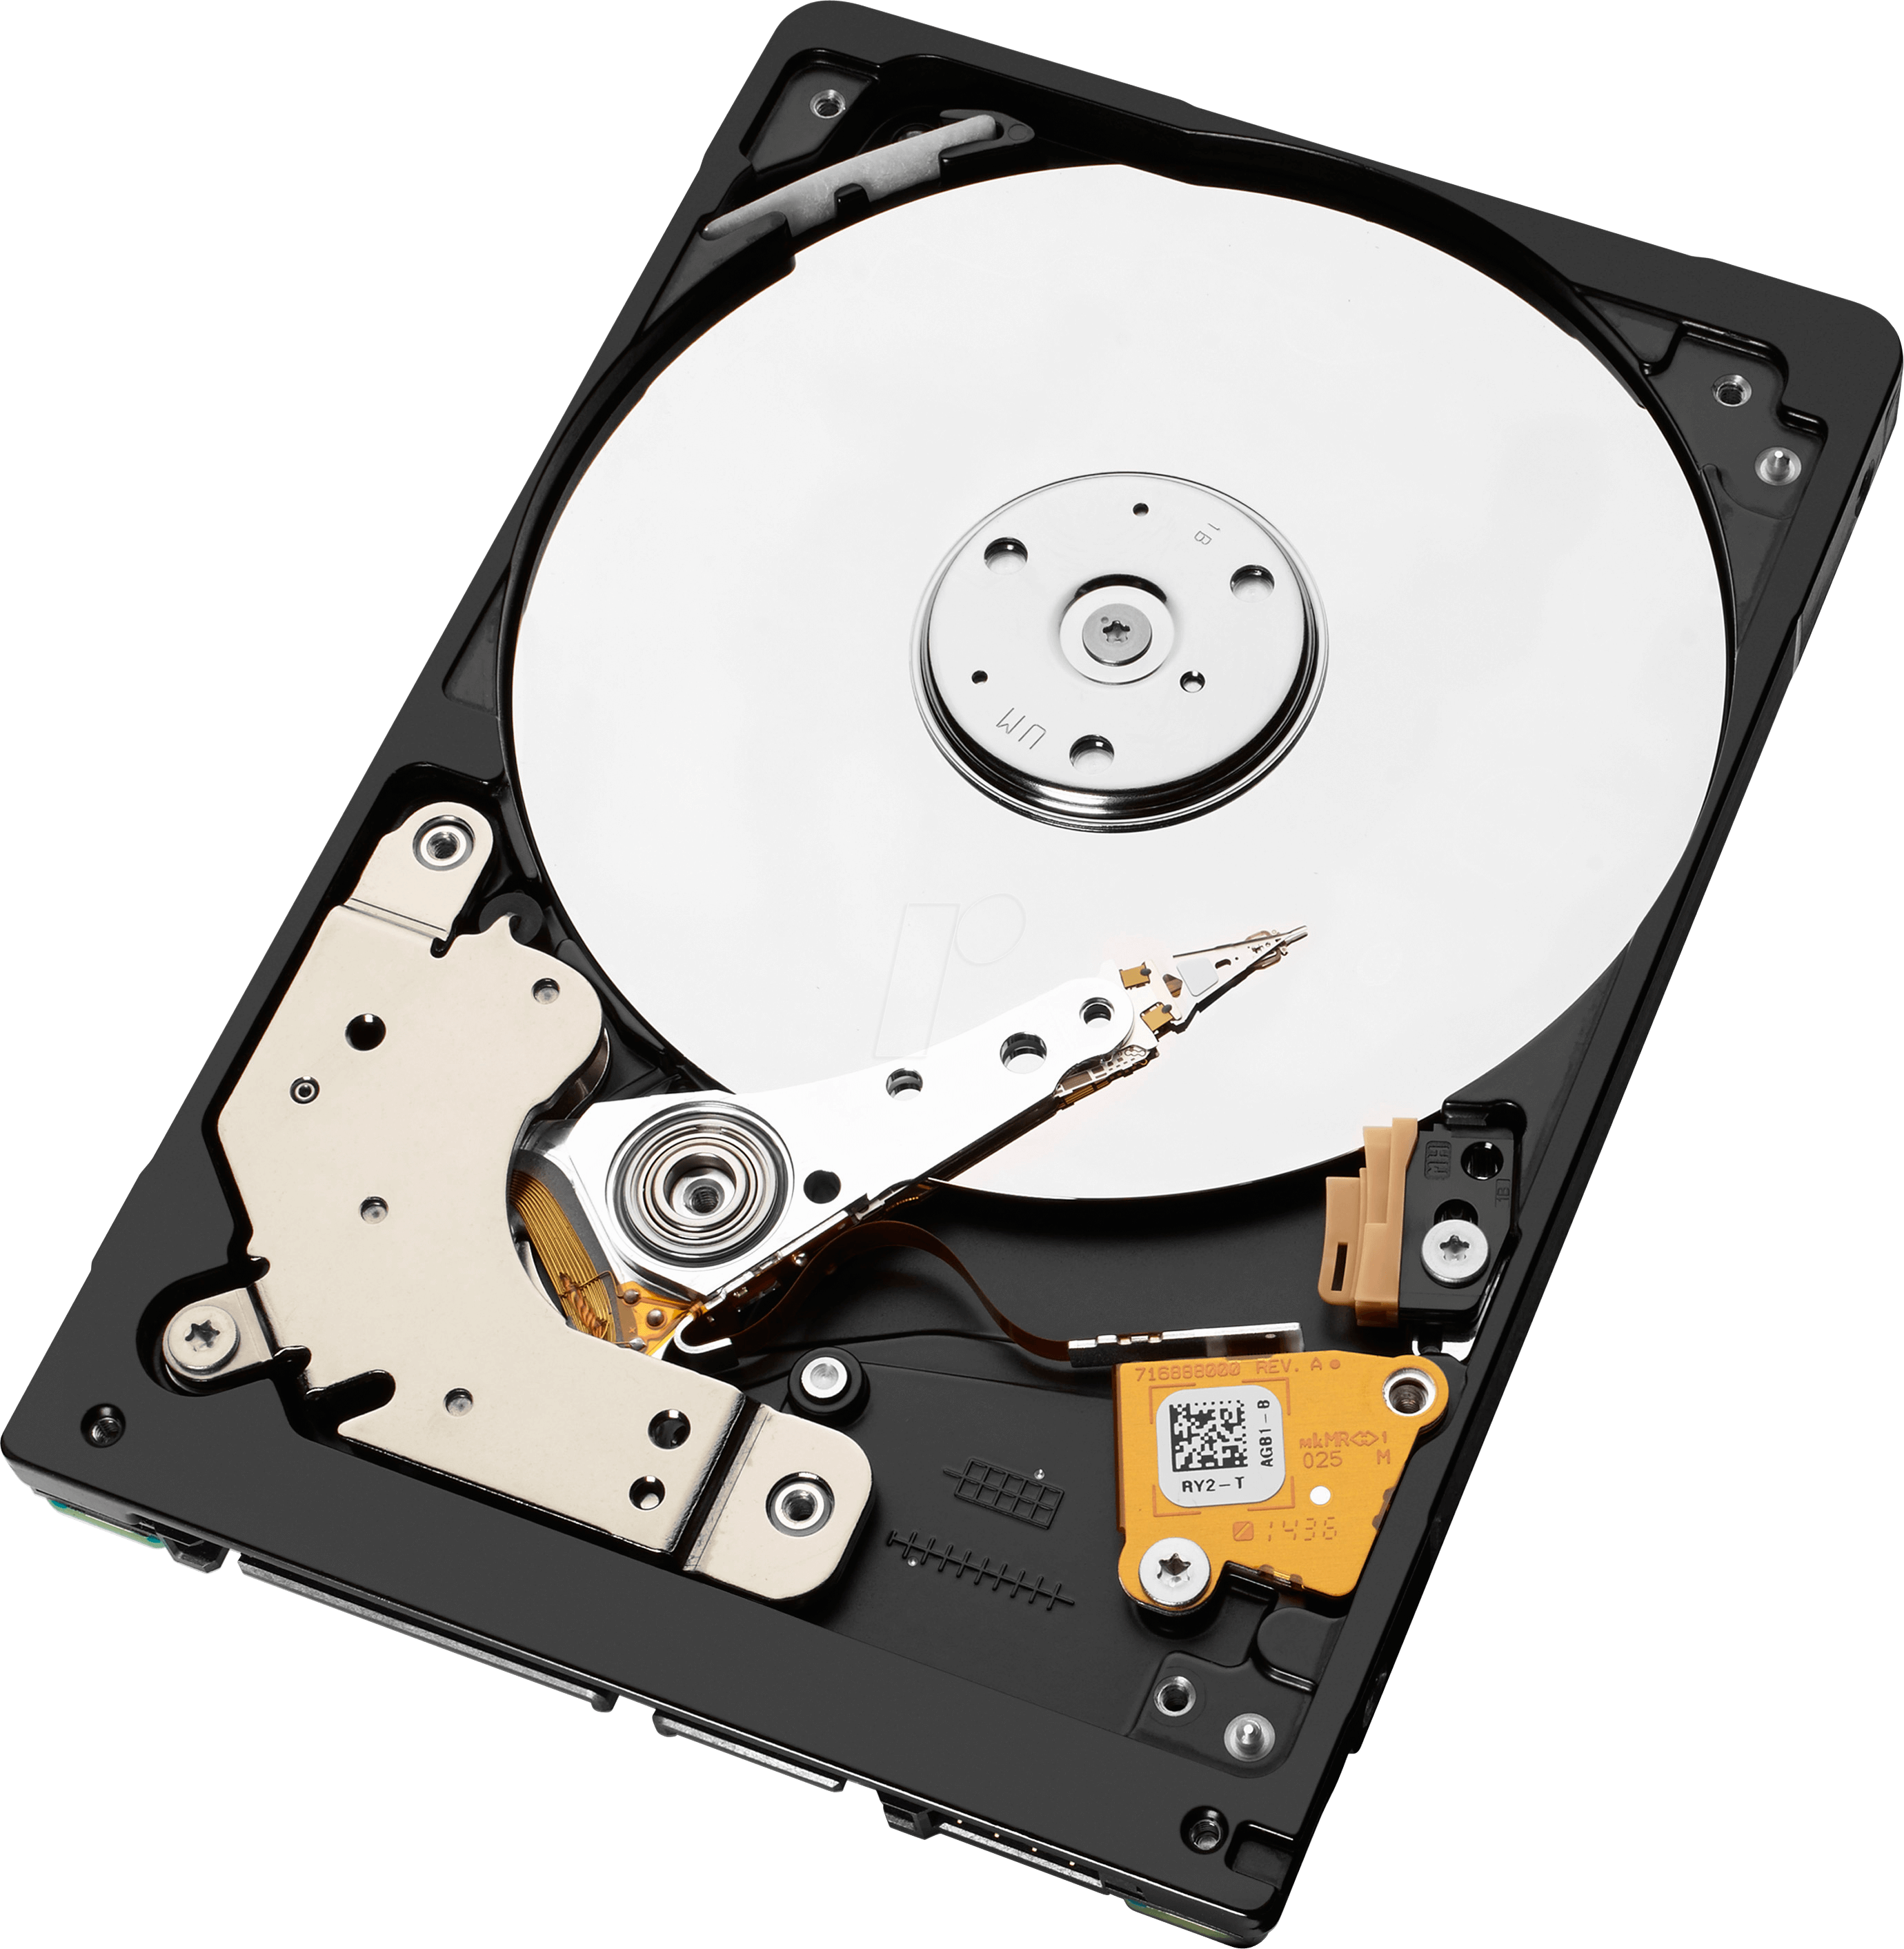 St1000lm035 notebook harddisk 1 tb seagate mobile at for Hdd esterno 4 tb